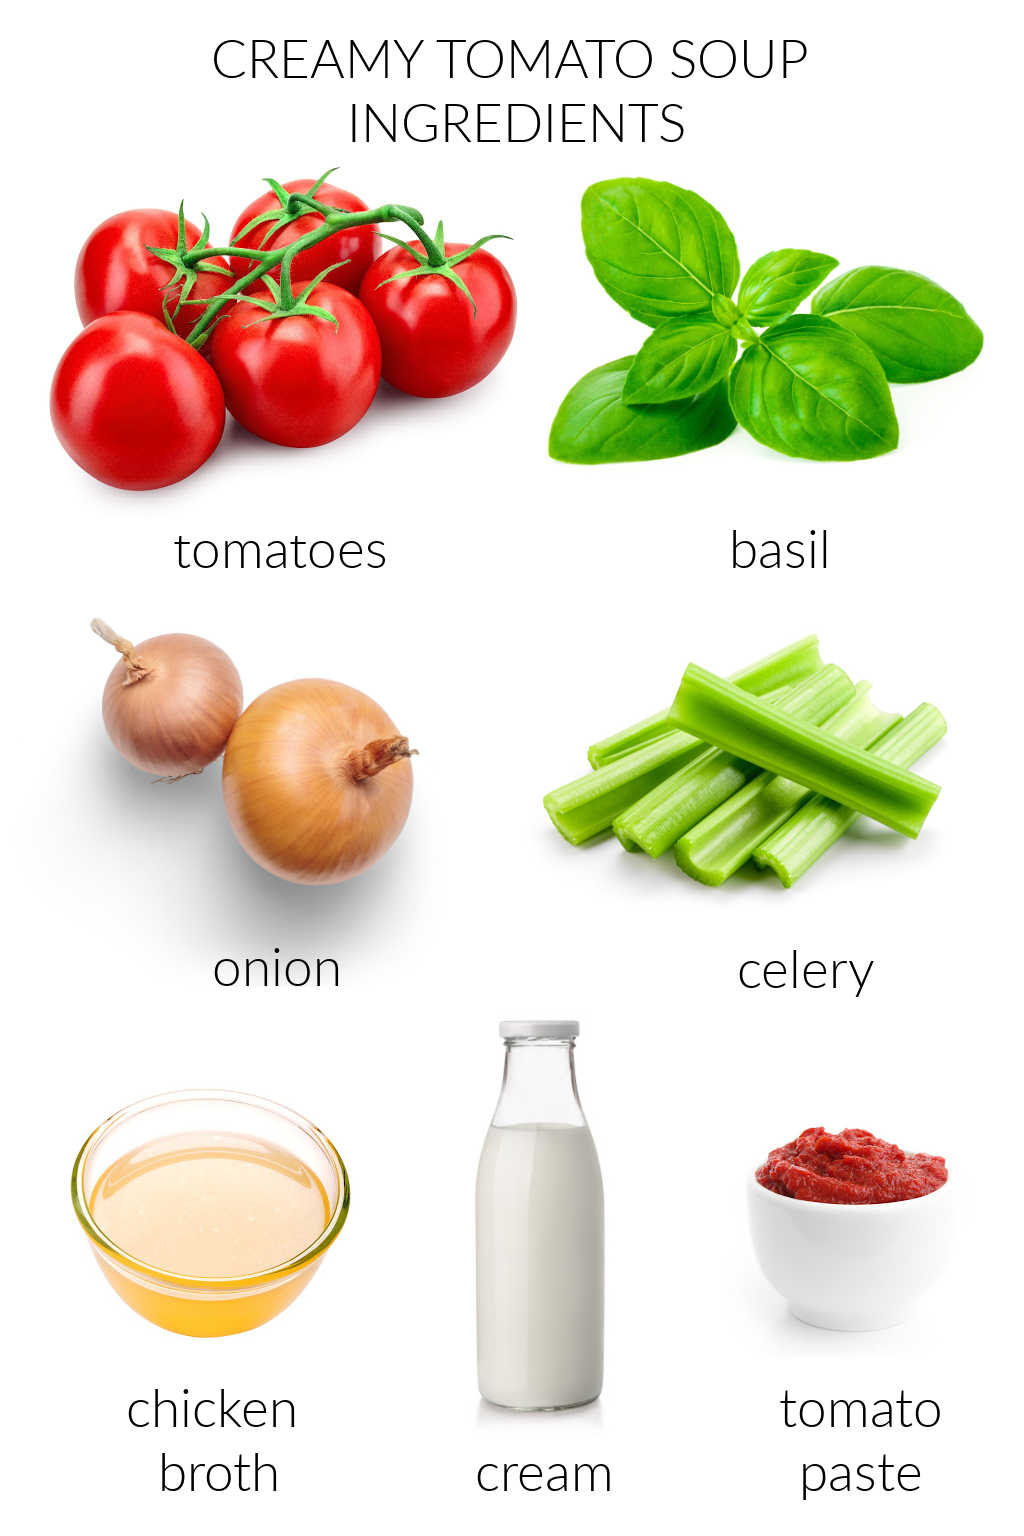 ingredients for creamy tomato soup